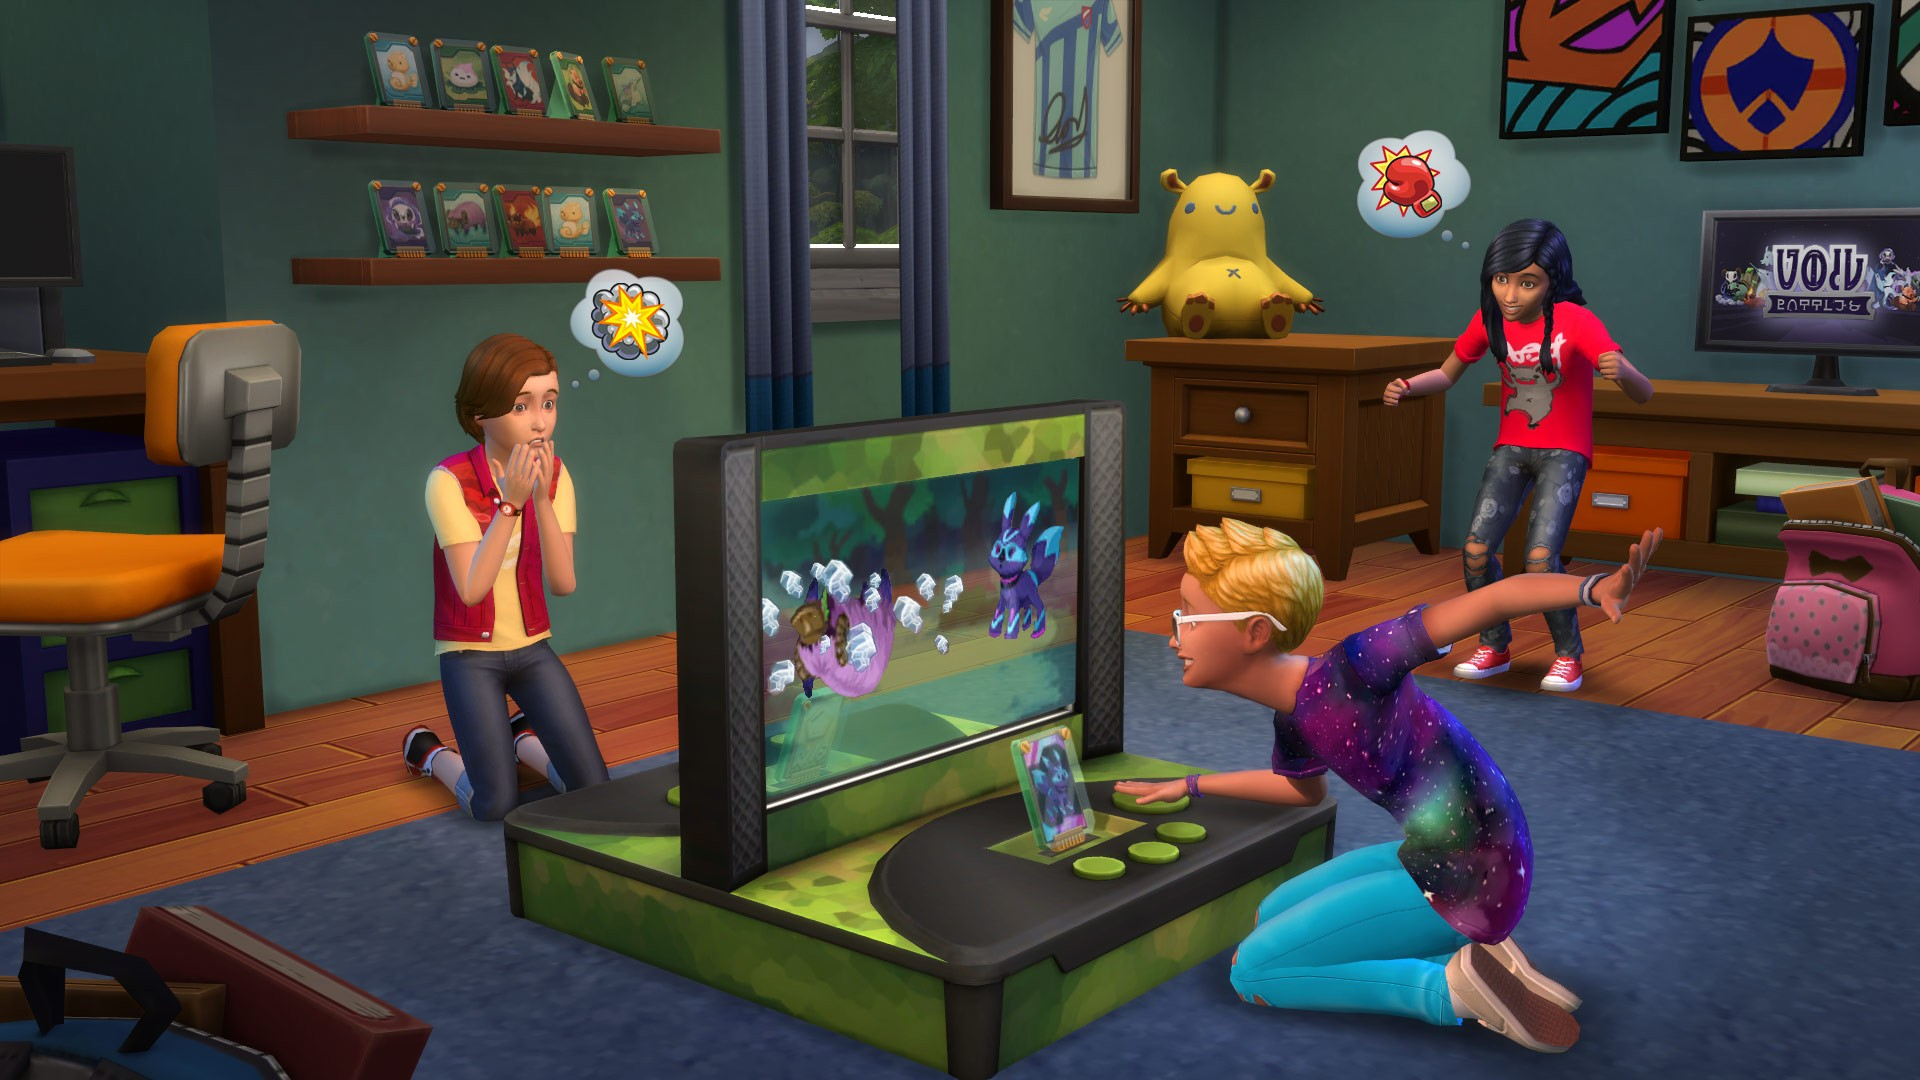 Buy the sims 4 bundle pack 4 pc game origin download for Where can i get wallpaper for my room